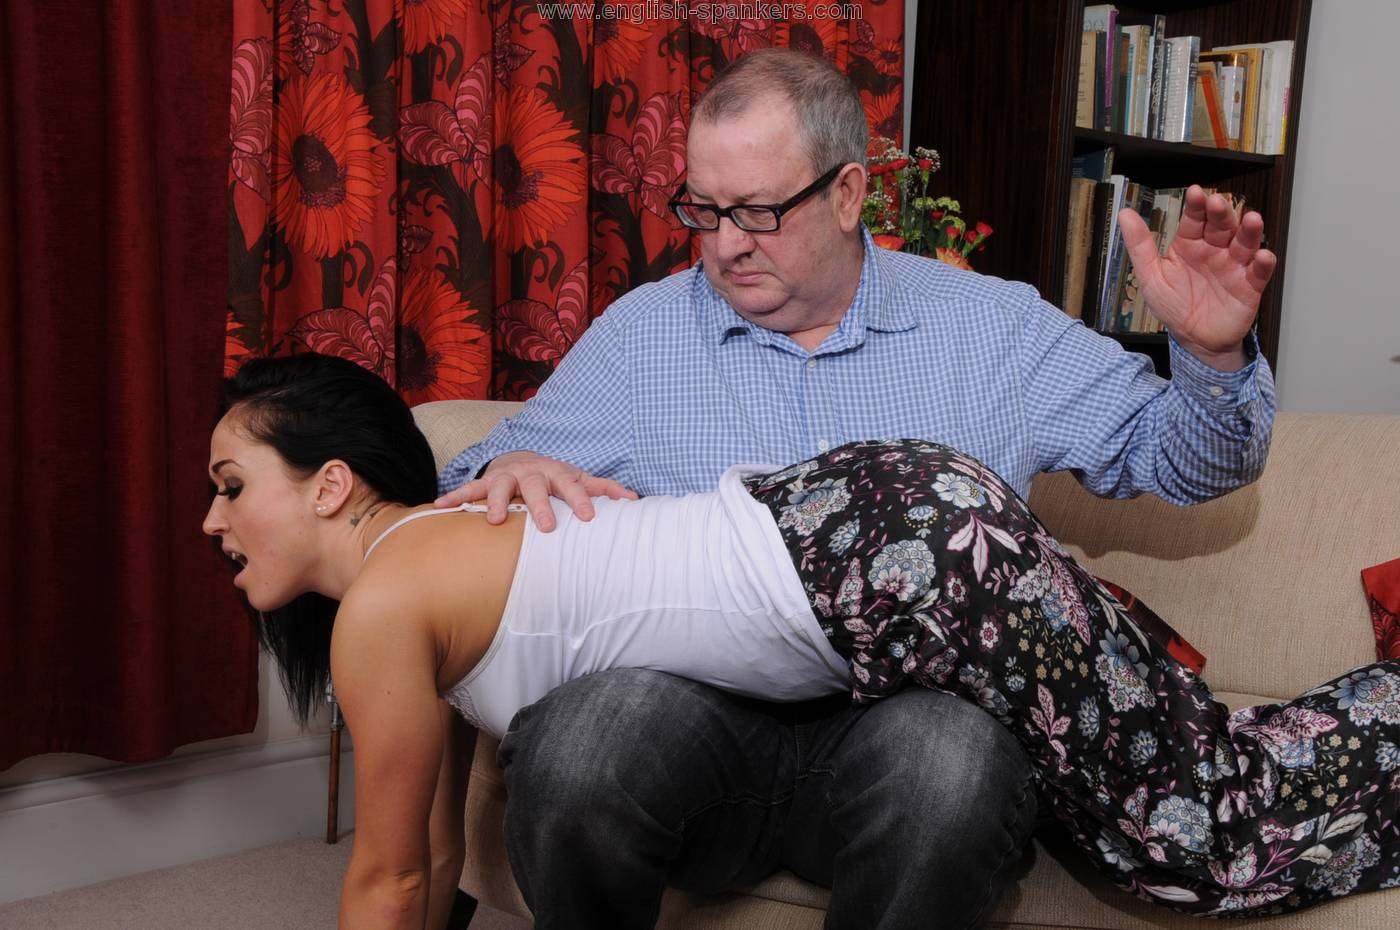 Spank daughter in law stories #5